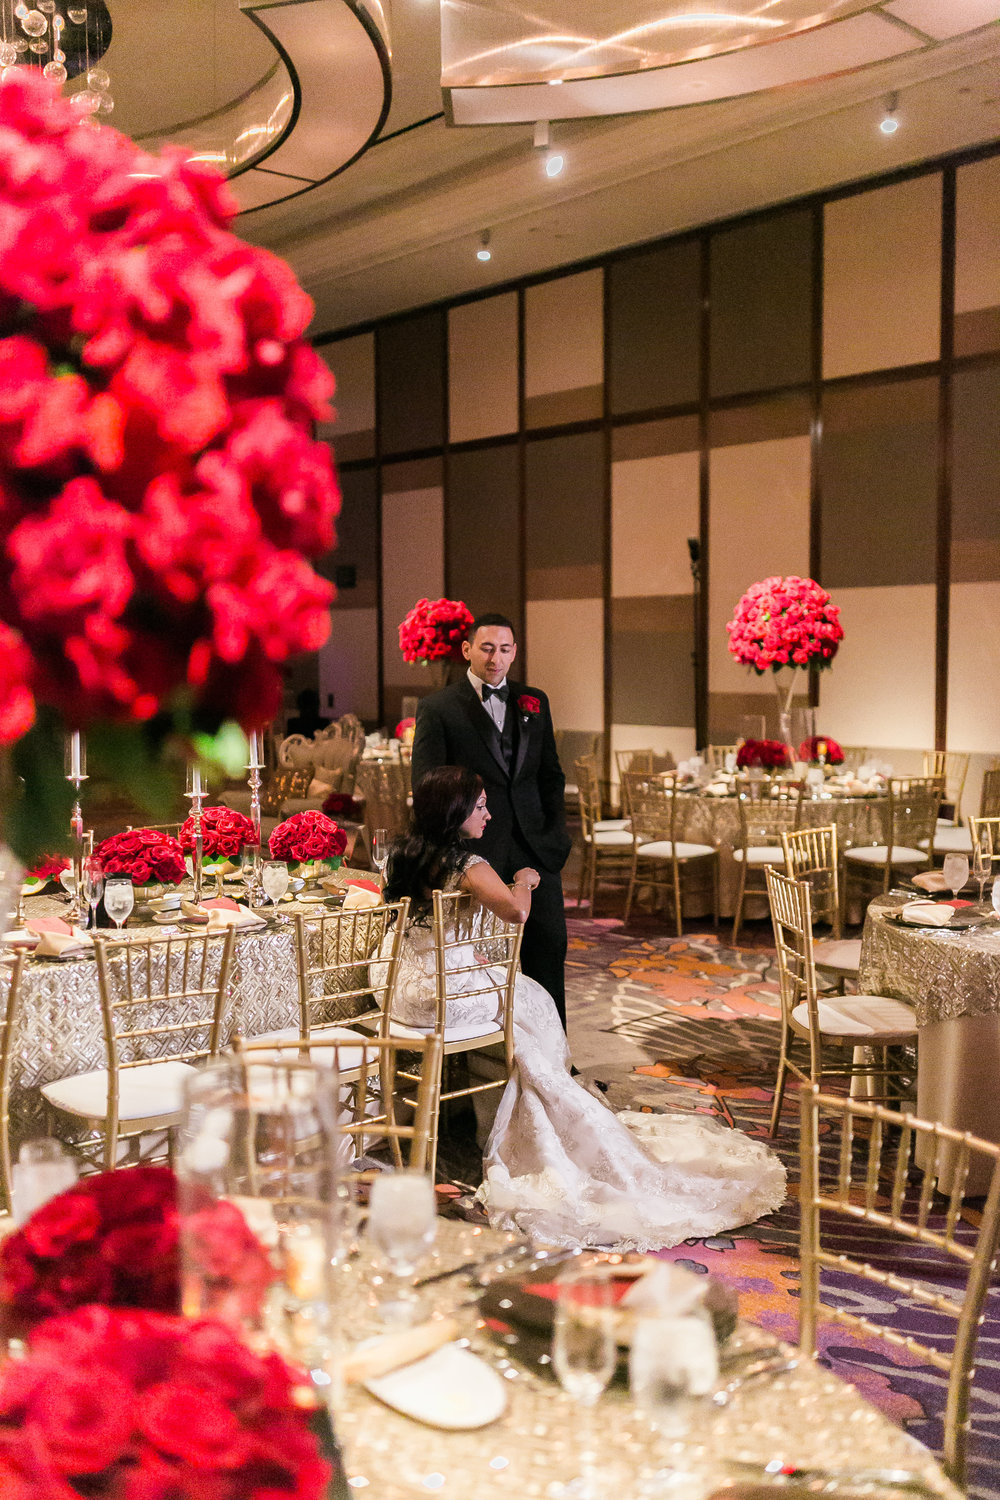 Lush red roses on tall centerpieces.   Las Vegas Wedding Planner Andrea Eppolito.  www.andreaeppolitoevents.com  Photo by J.Anne Photography.  www.j-annephotography.com  As seen on The  Wedding Editorialist  Wedding Blog.